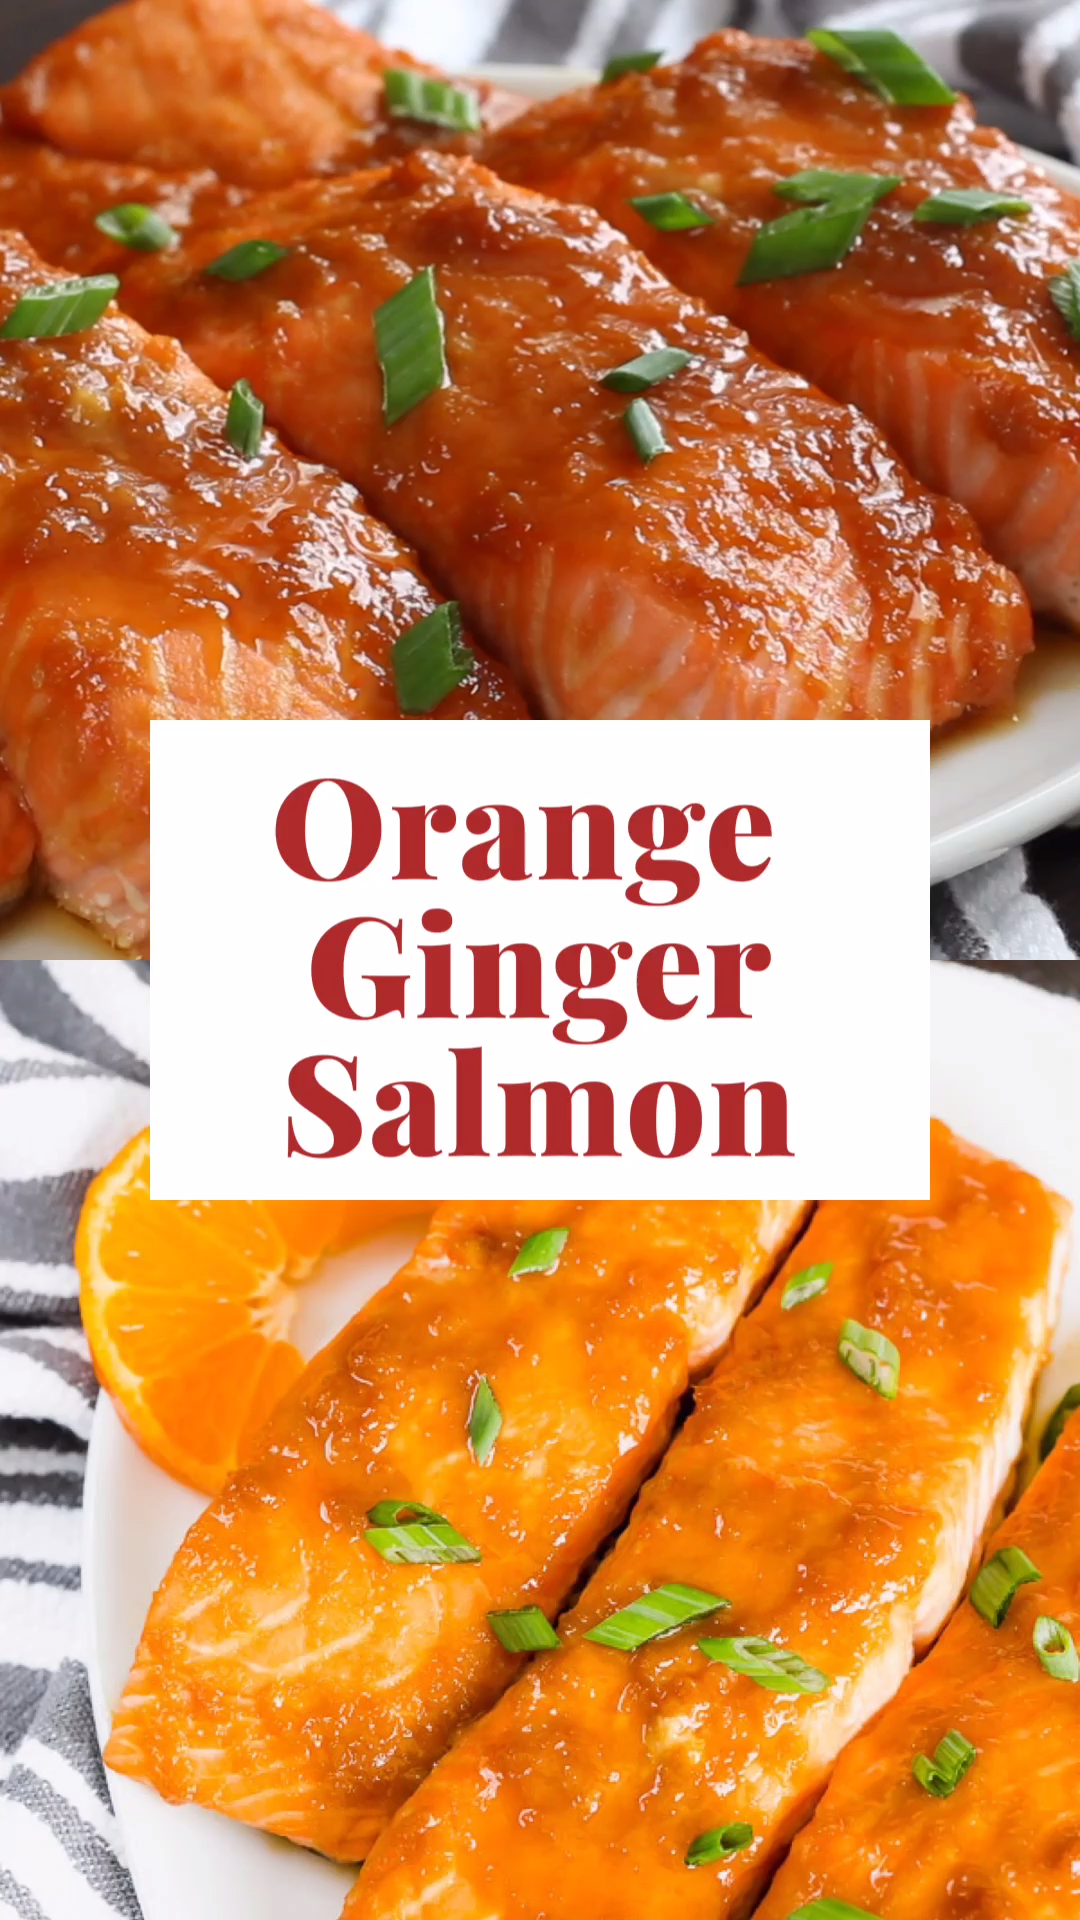 Baked Orange Ginger Salmon